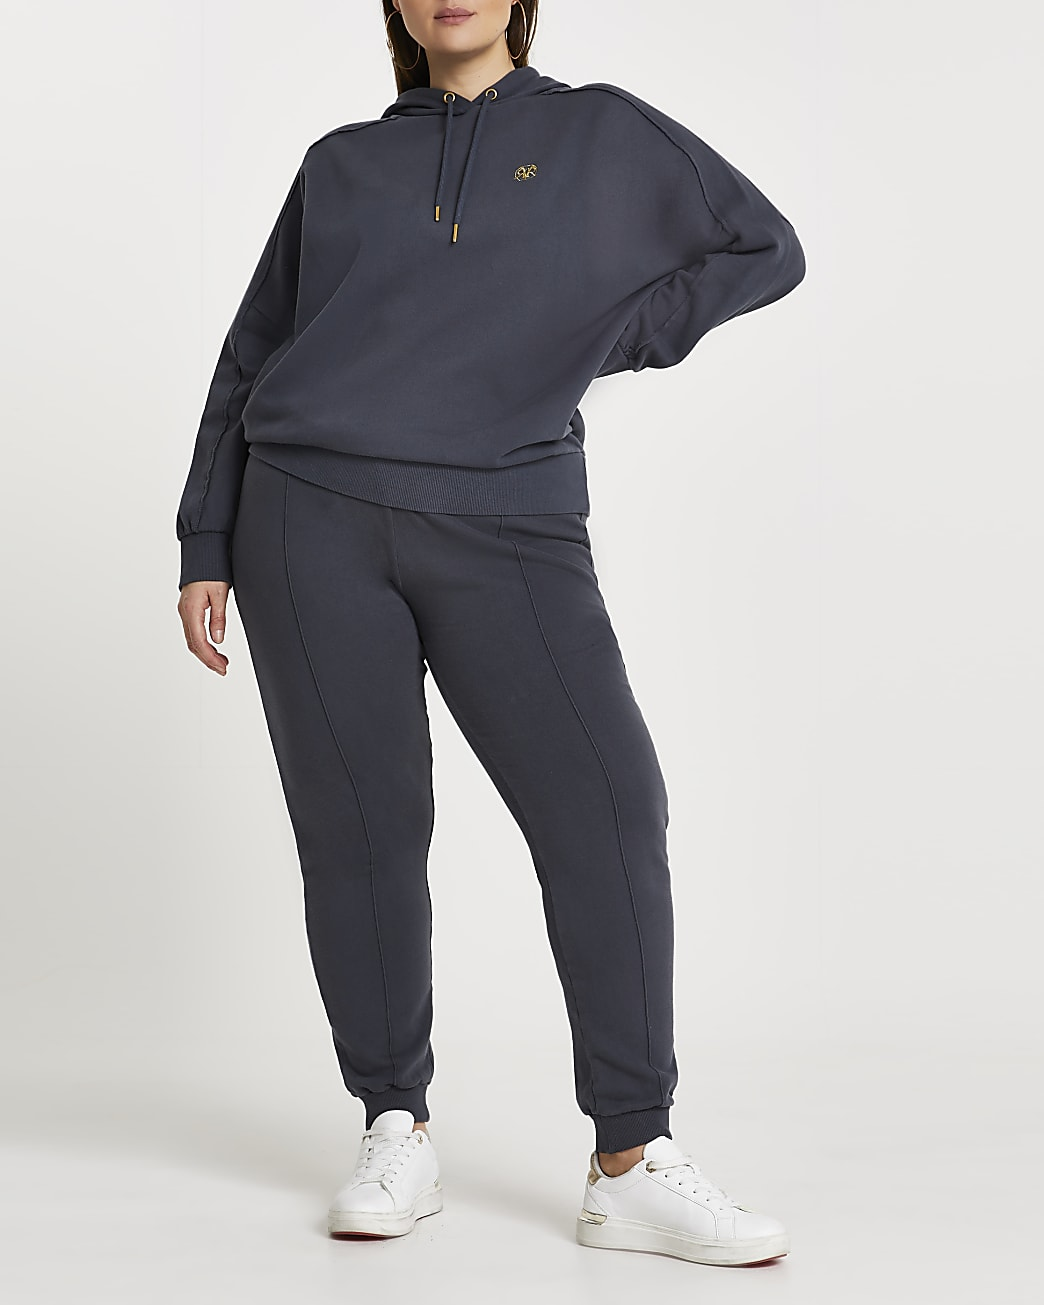 Plus black ankle cuffed joggers